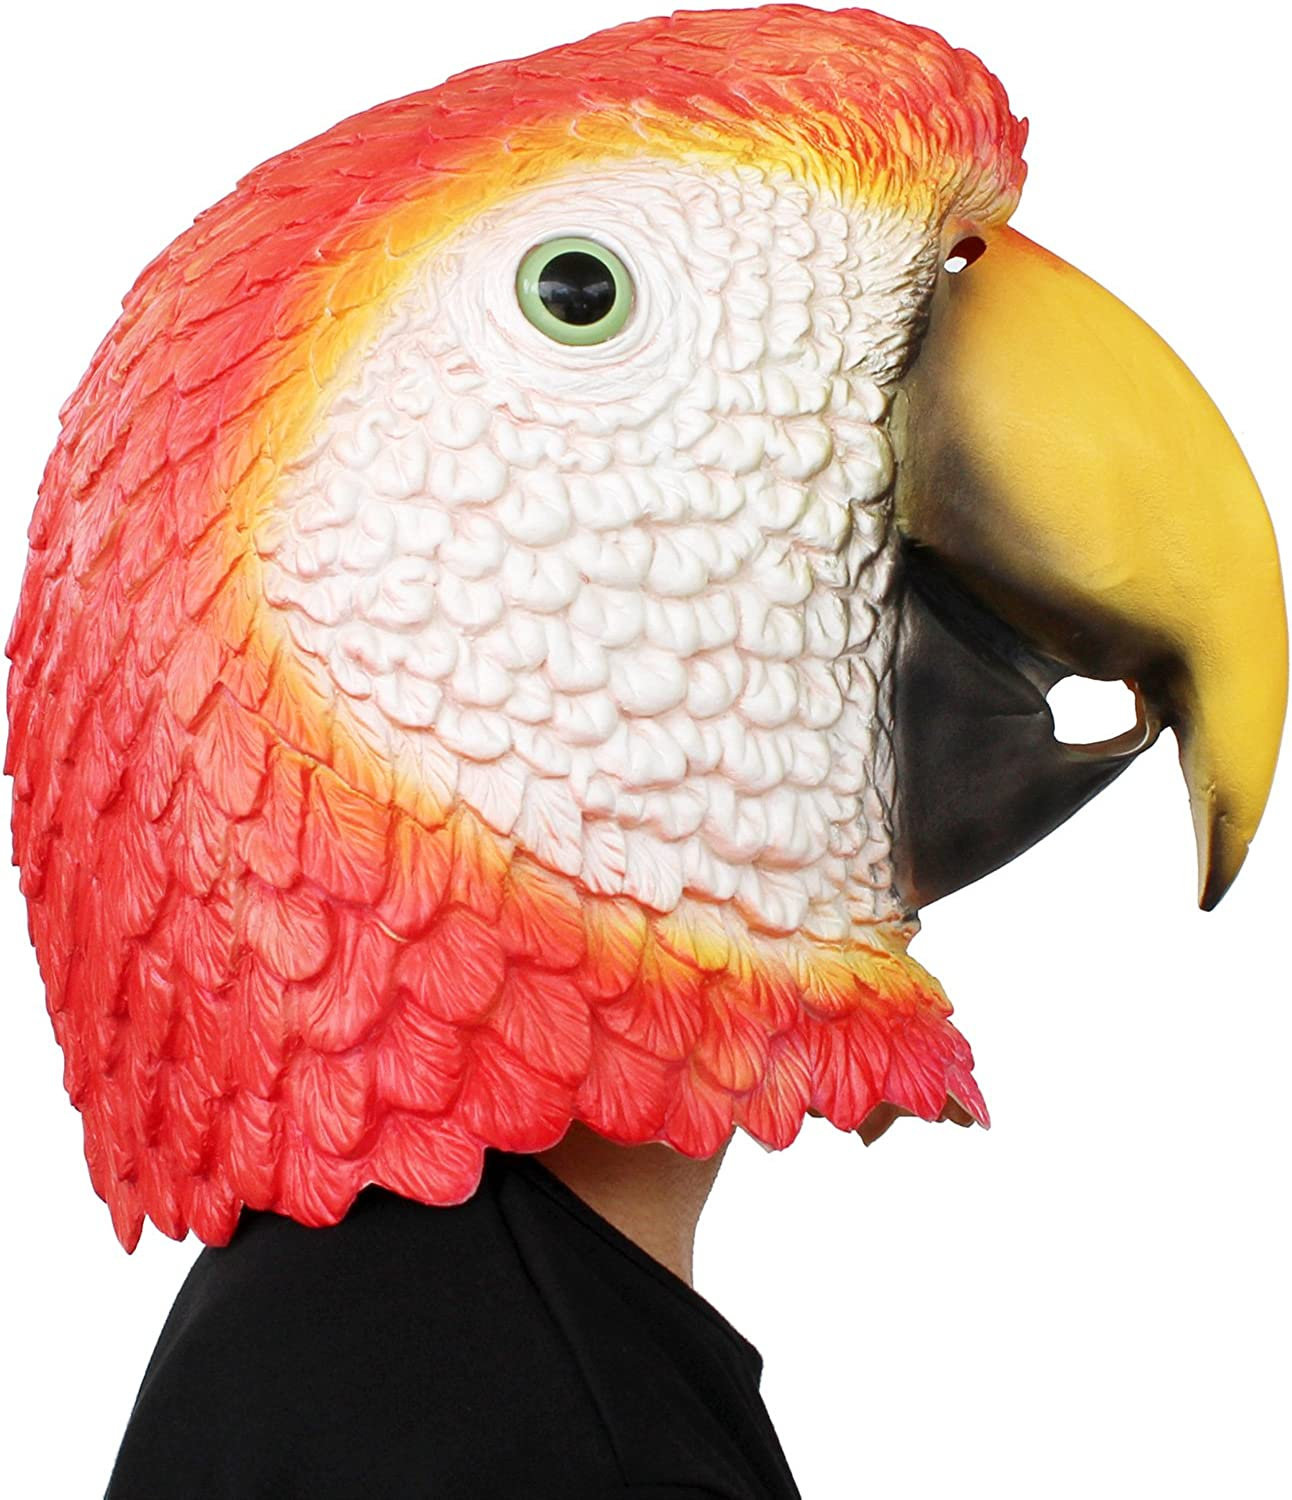 PartyHop - Red Parrot Mask - Latex Animal Bird Head Mask Halloween Party Costume for Adults and Kids